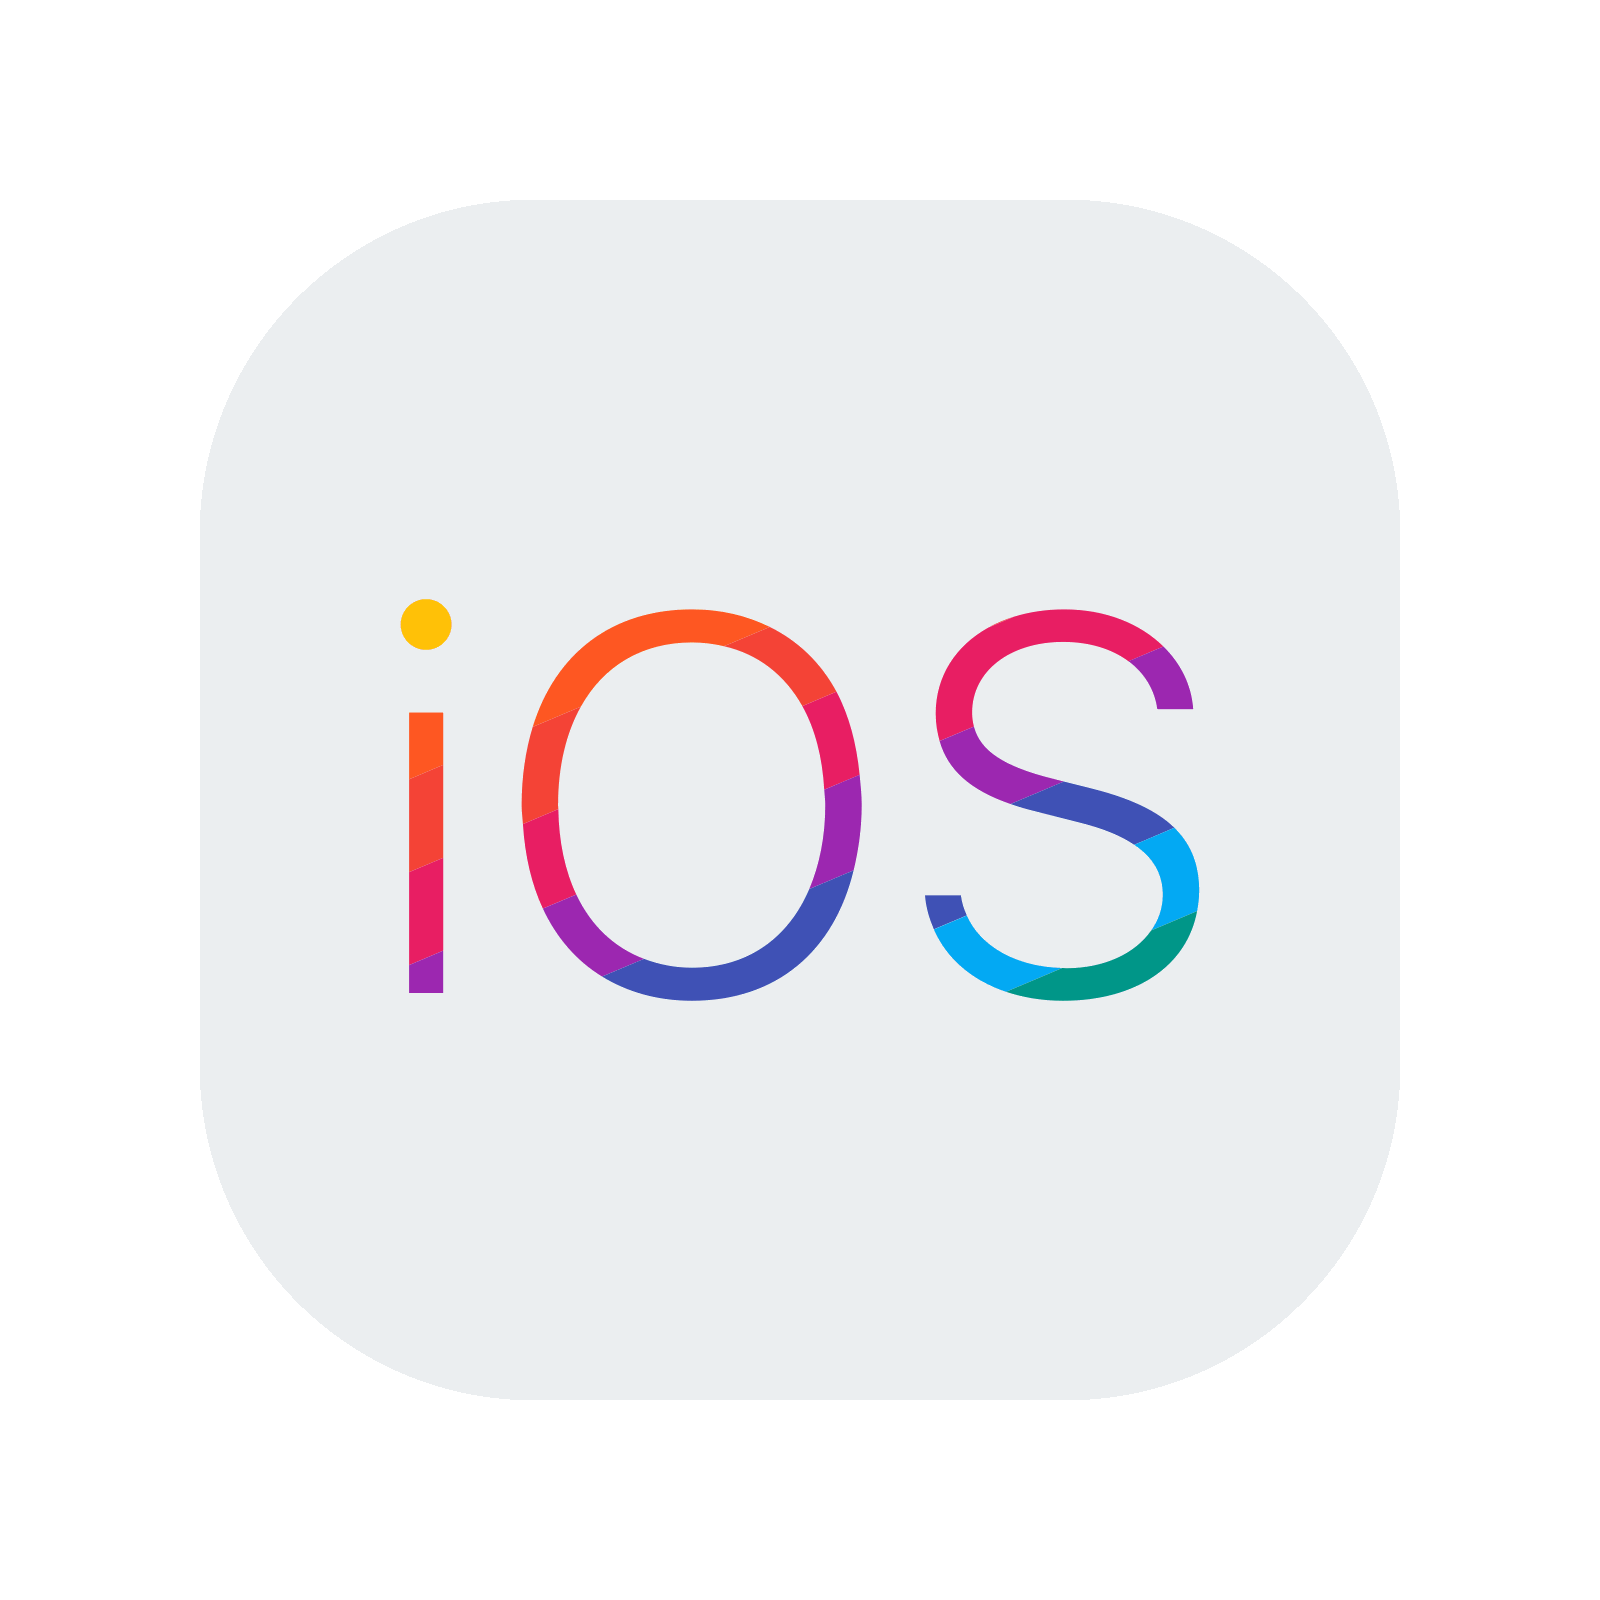 Iphone health icon png. Ios logo free download